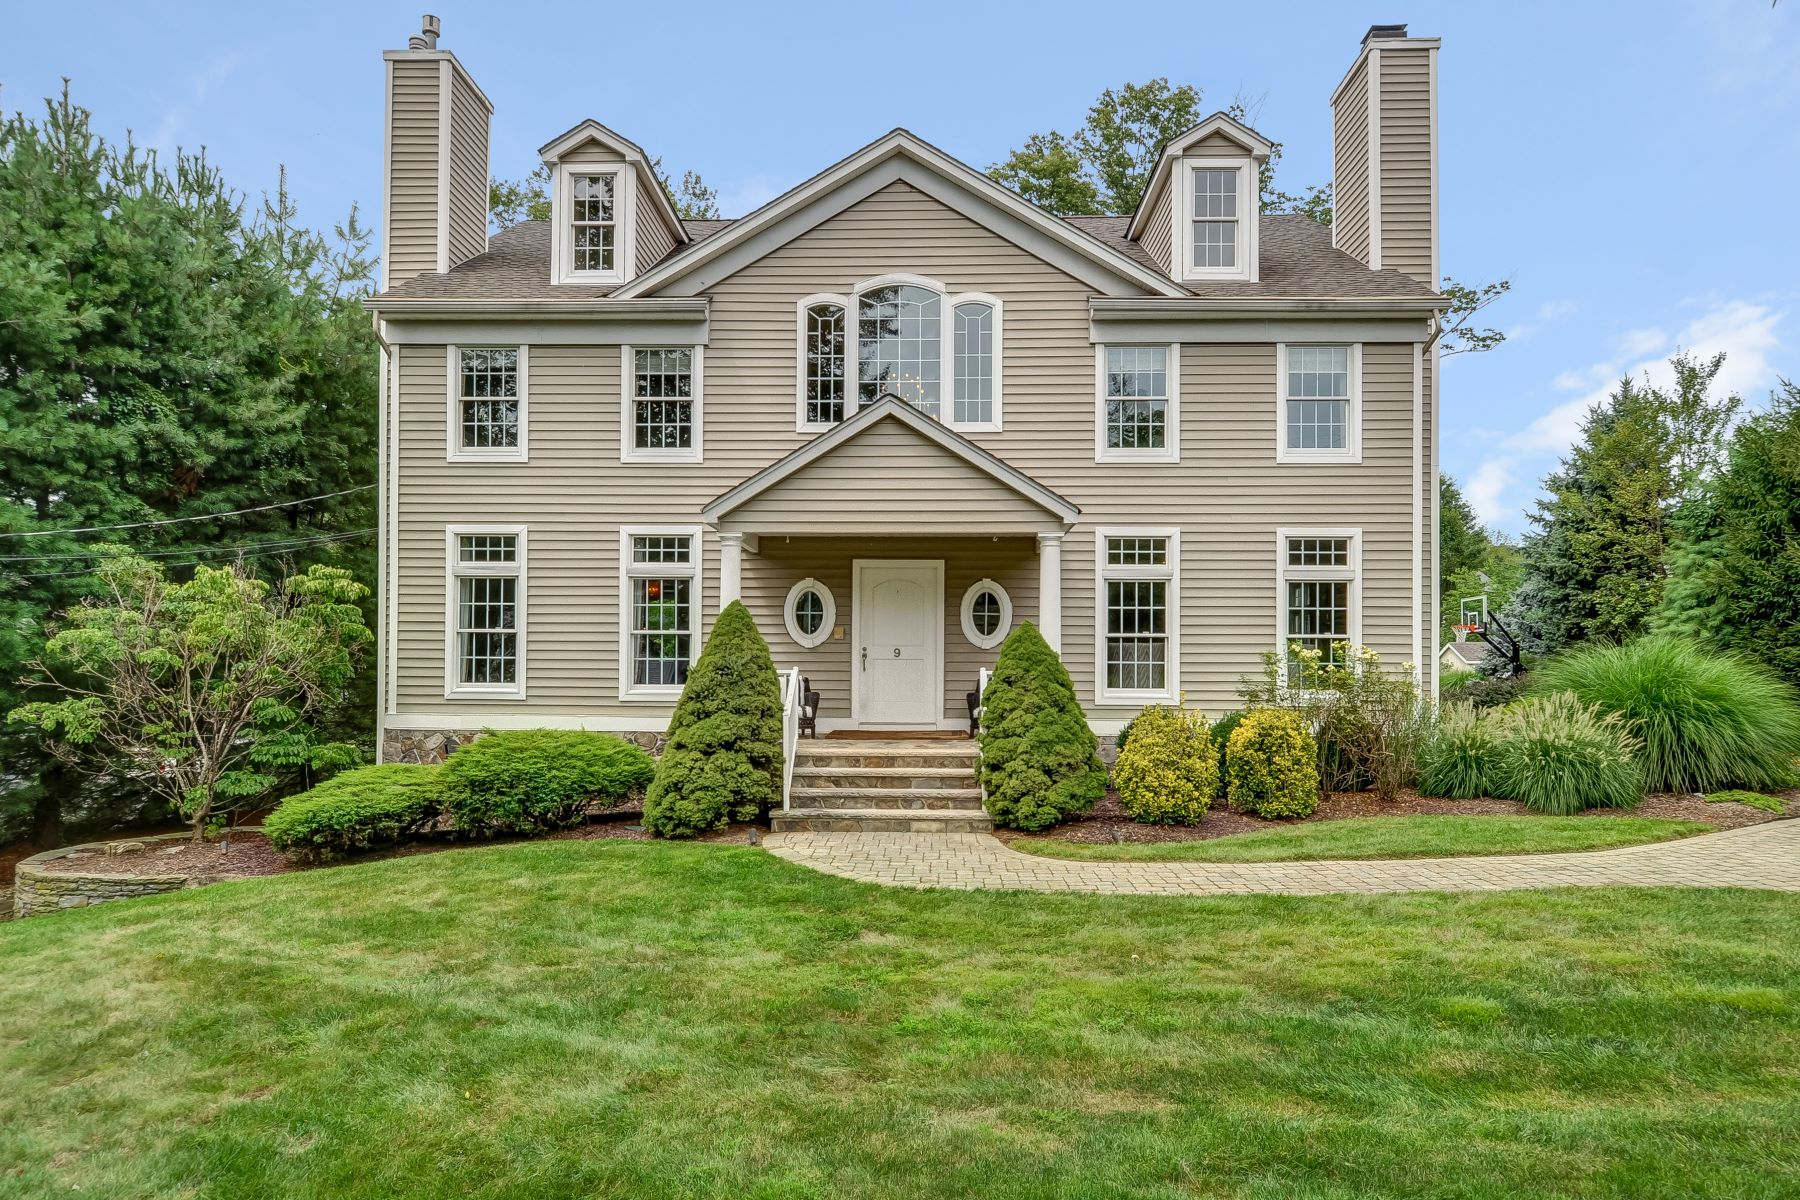 Moradia para Venda às Well Appointed Custom Colonial 9 Conkling Street, Basking Ridge, Nova Jersey 07920 Estados Unidos